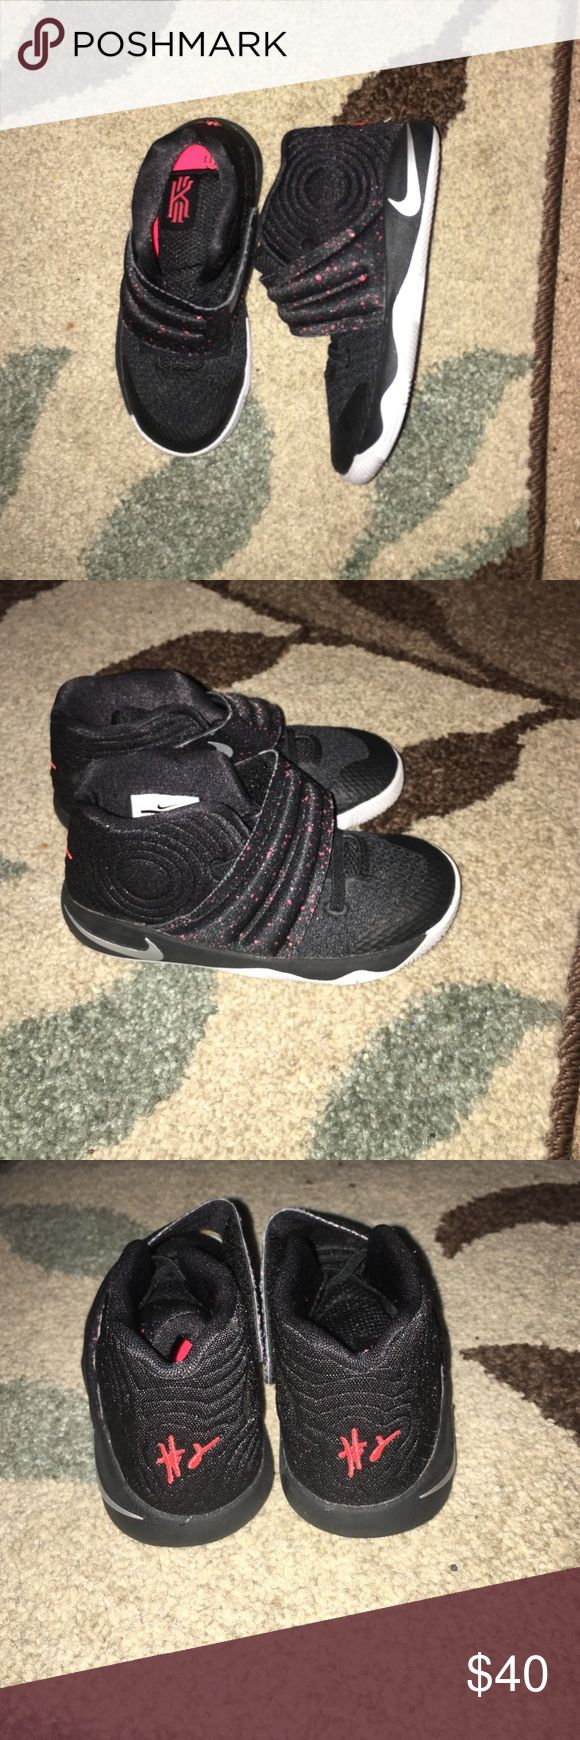 kyrie Irving kids shoes Nike Black,gray,and pink spot Velcro KIDS shoes. Worn 1 time. condition 9 1/2/10 kyrie irving Shoes Sneakers